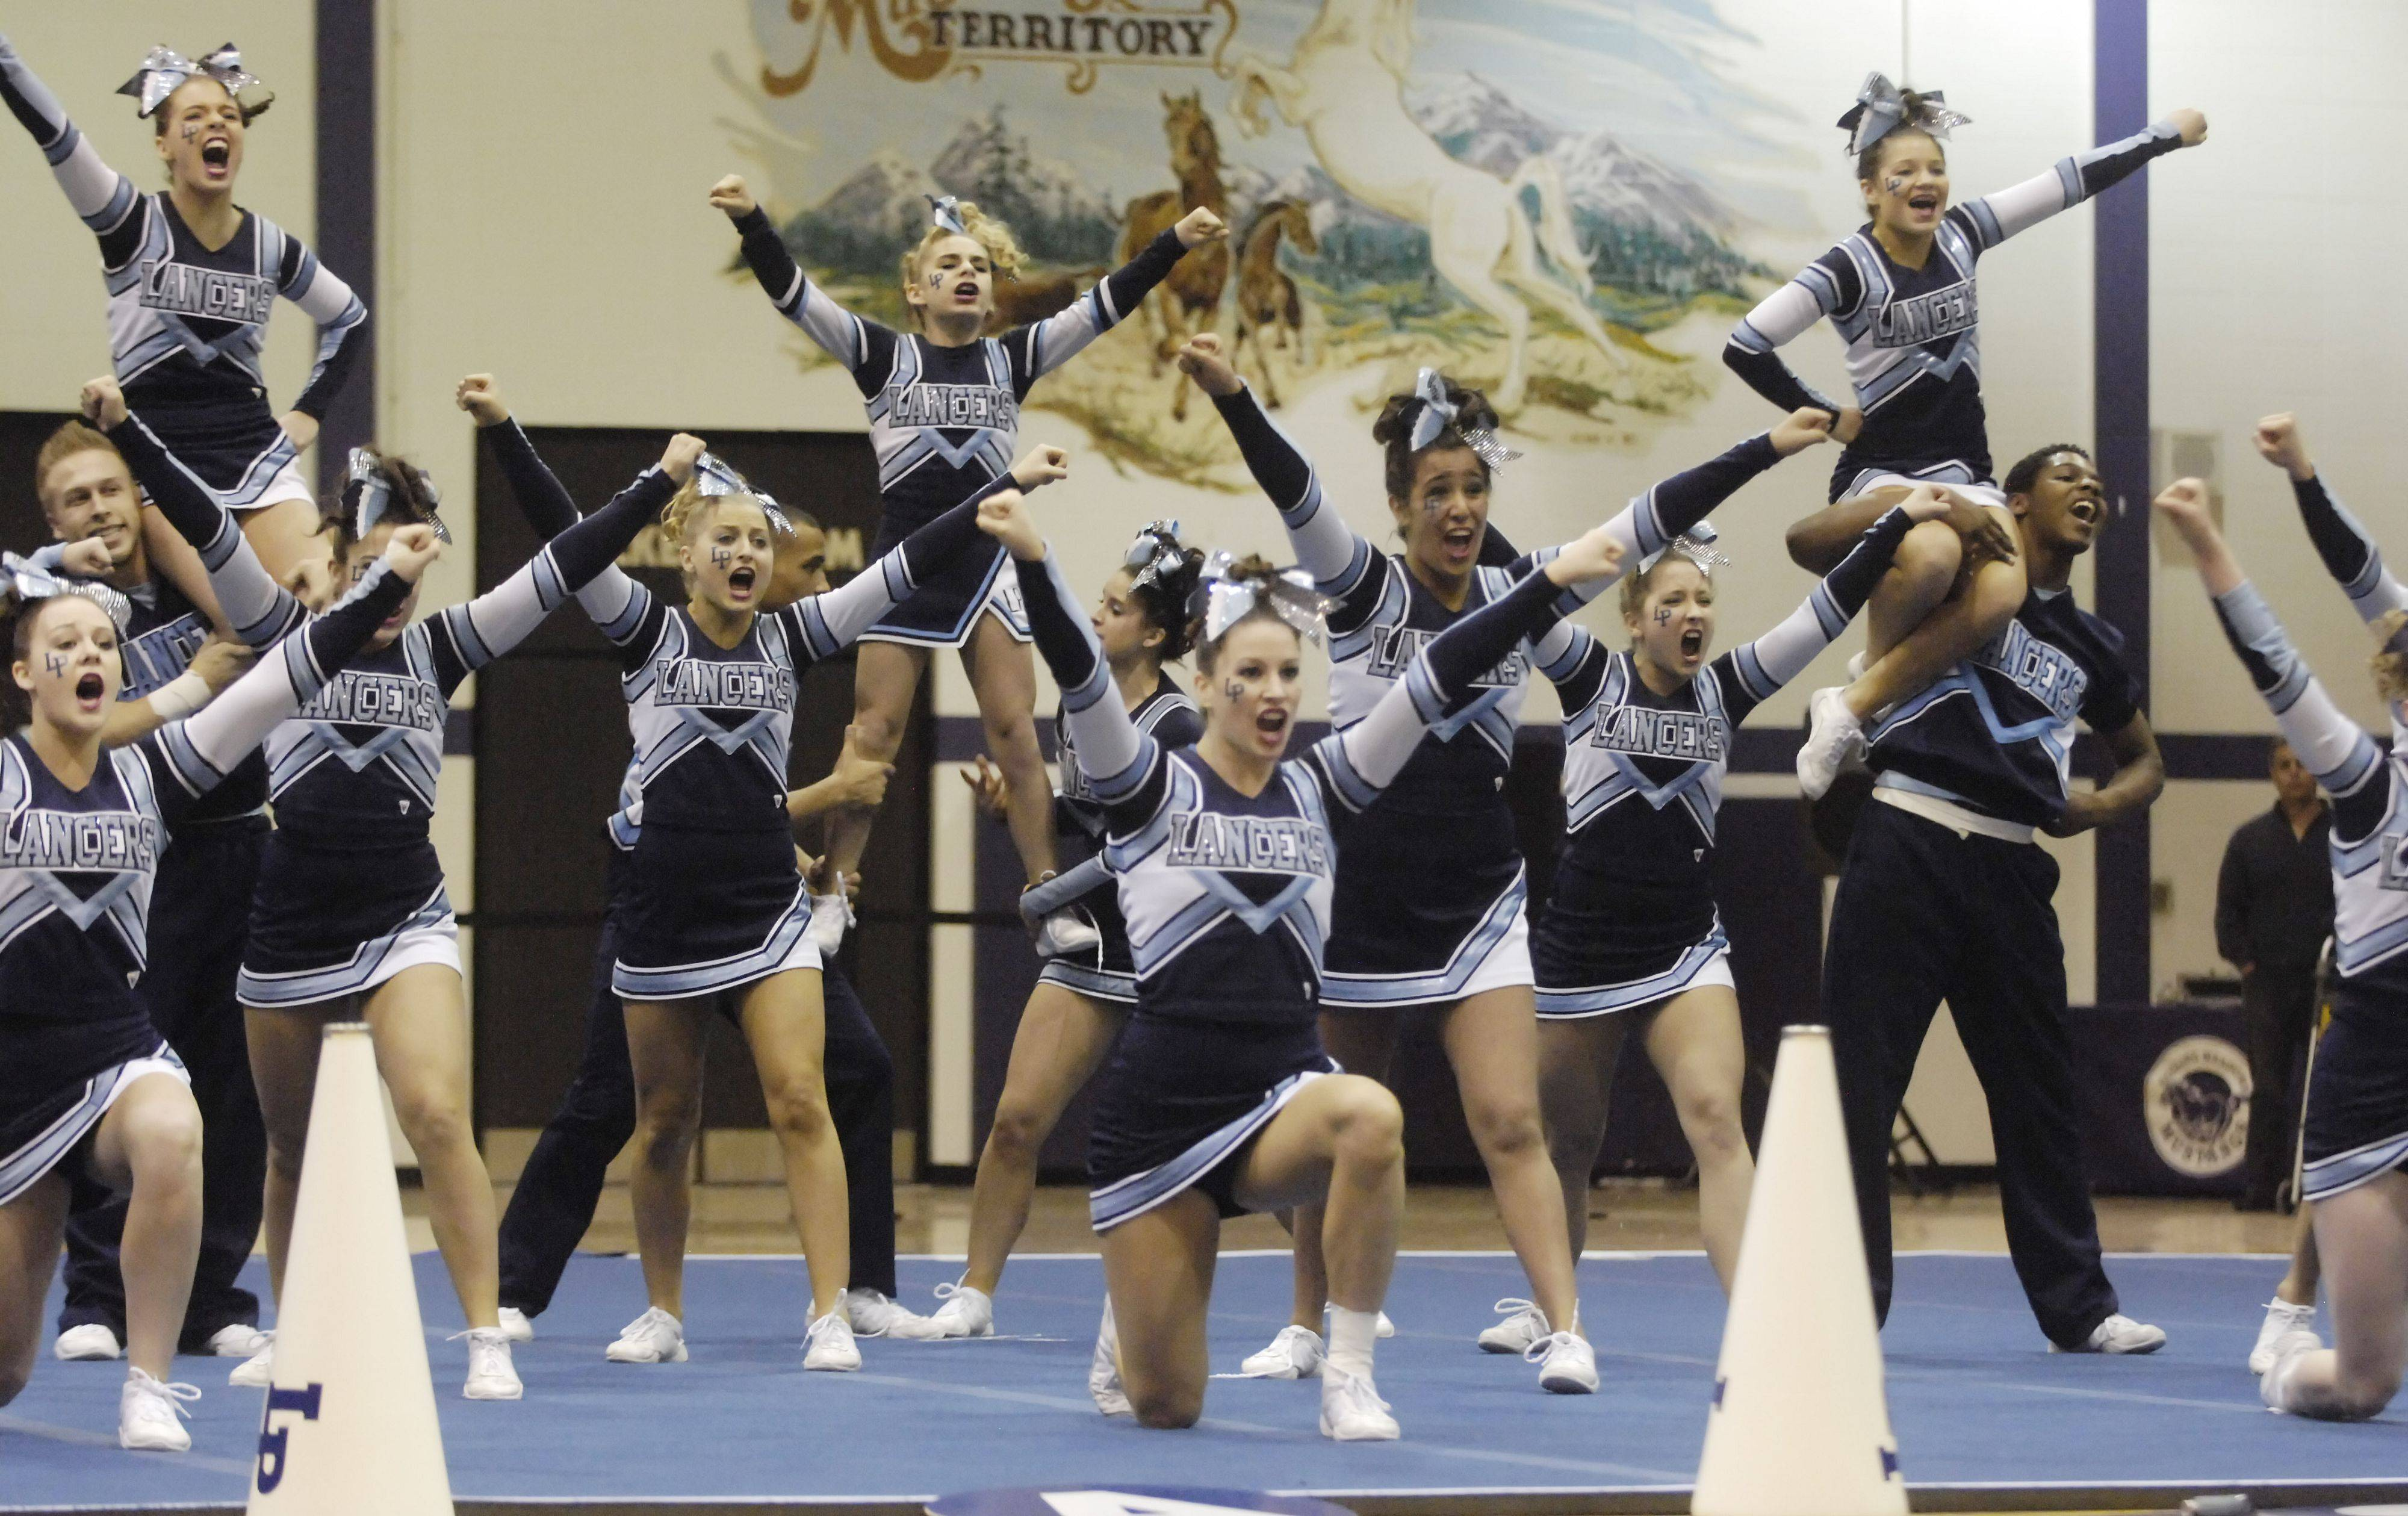 Lake Park competes during Saturday's cheerleading sectional hosted by Rolling Meadows High School.